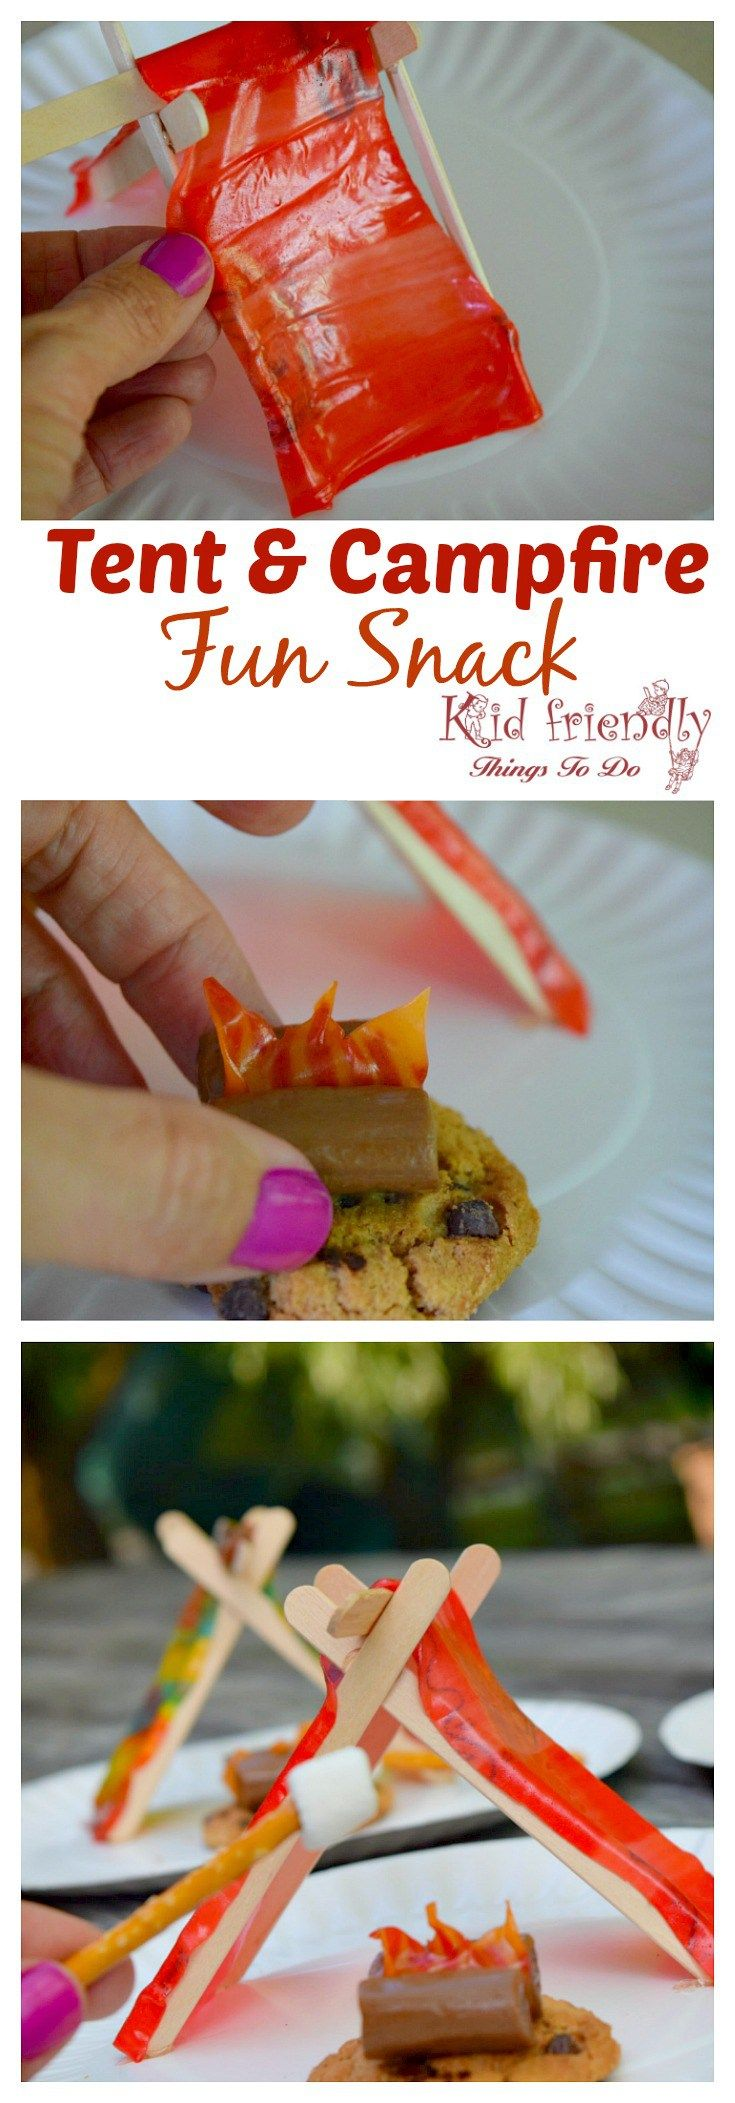 A Tent and Campfire Fun Food Idea for Kids